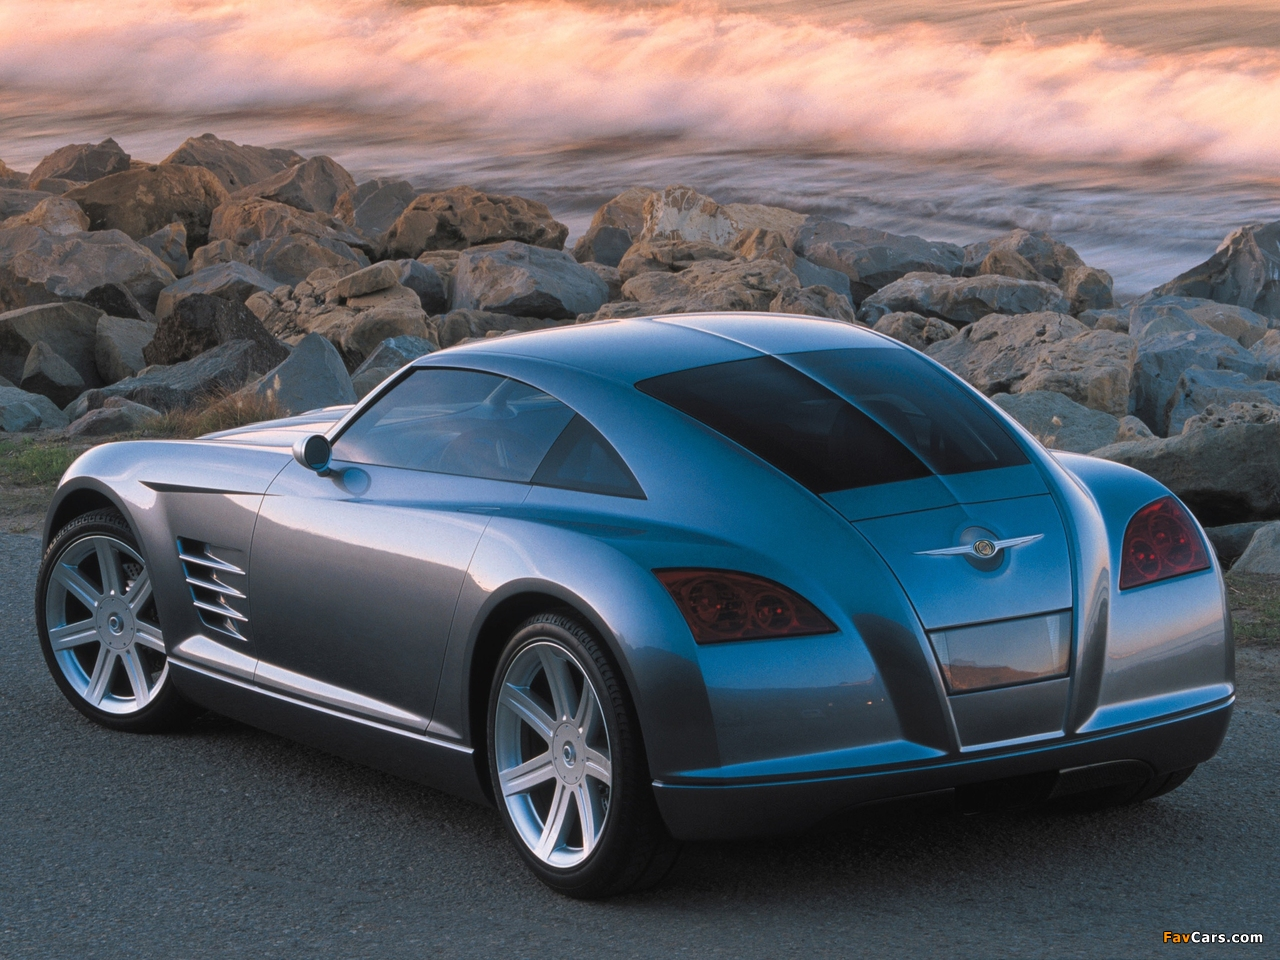 Chrysler Crossfire Concept 2001 pictures (1280 x 960)